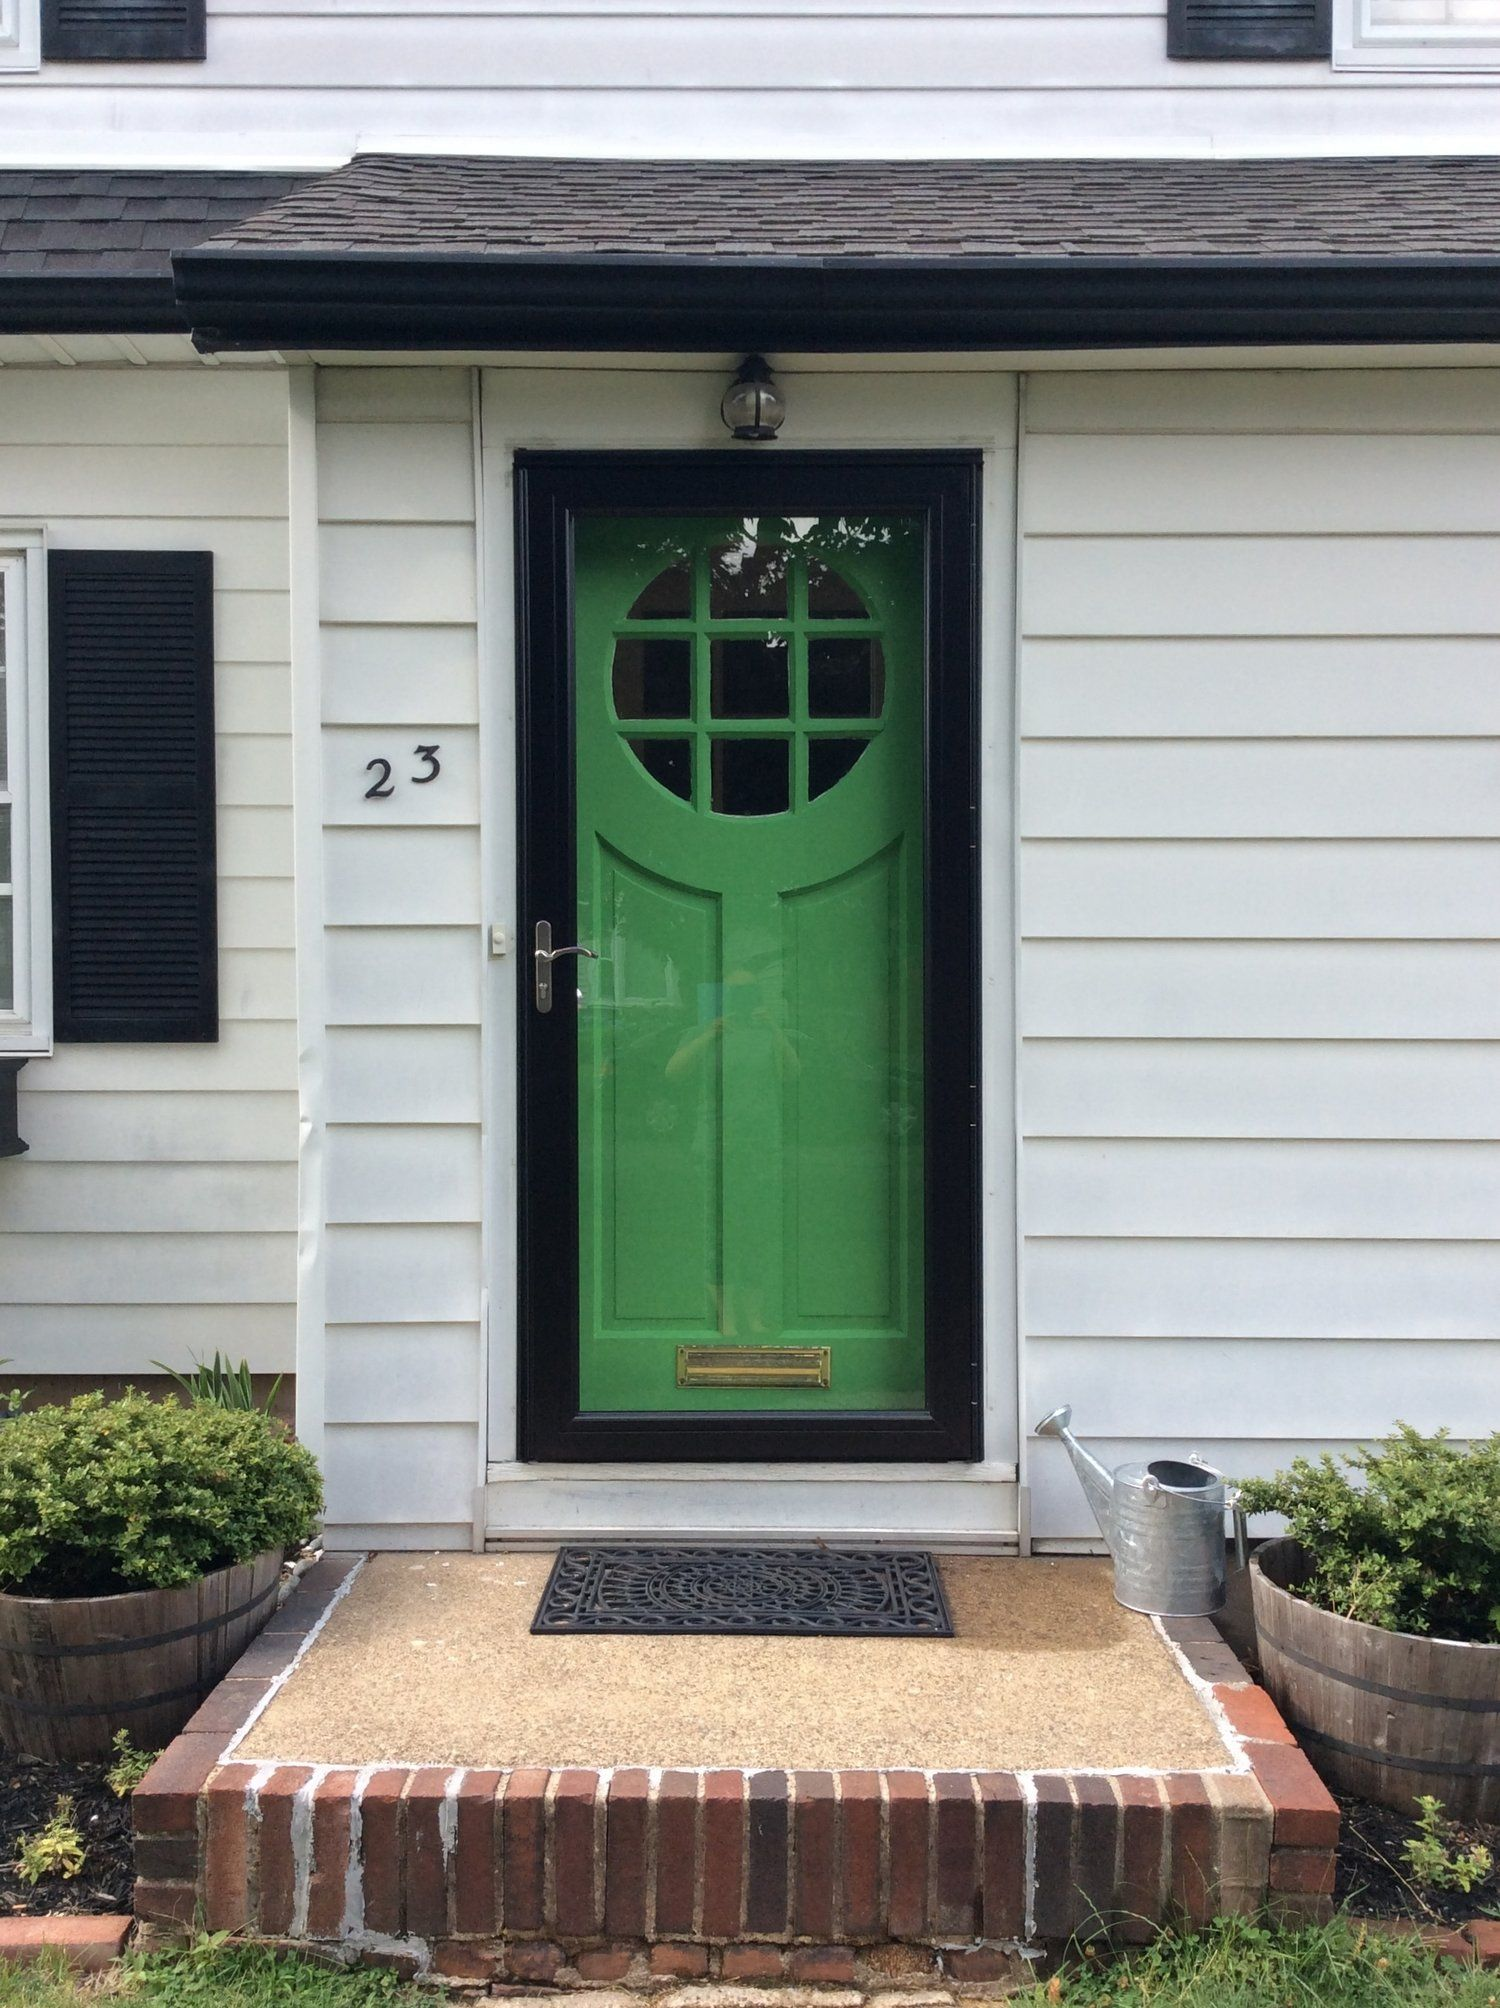 Our Suburban Fixer Upper brimming with rustic curb appeal and shabby